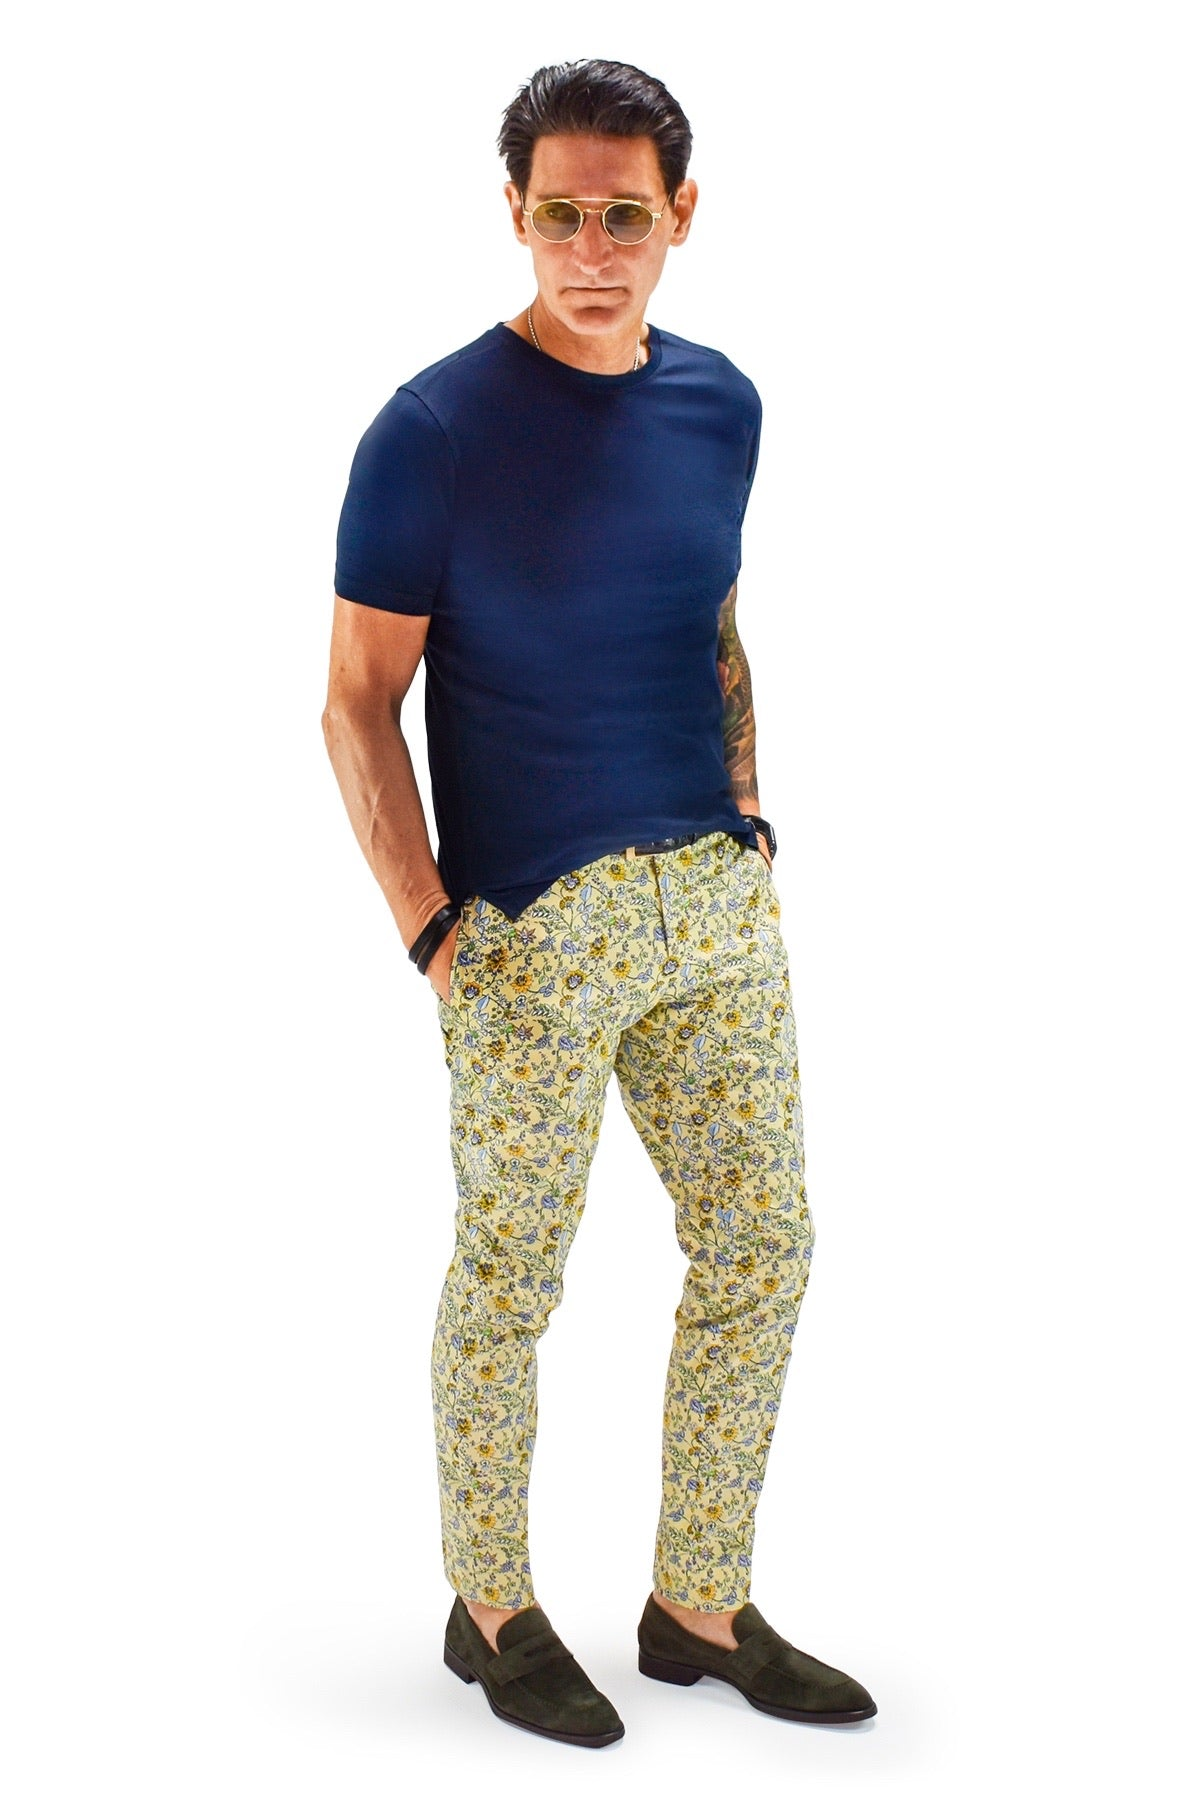 David August Slim Fit Tapered Yellow With Blue Gold And White Floral Pattern Cotton Trousers - Cut-to-Order